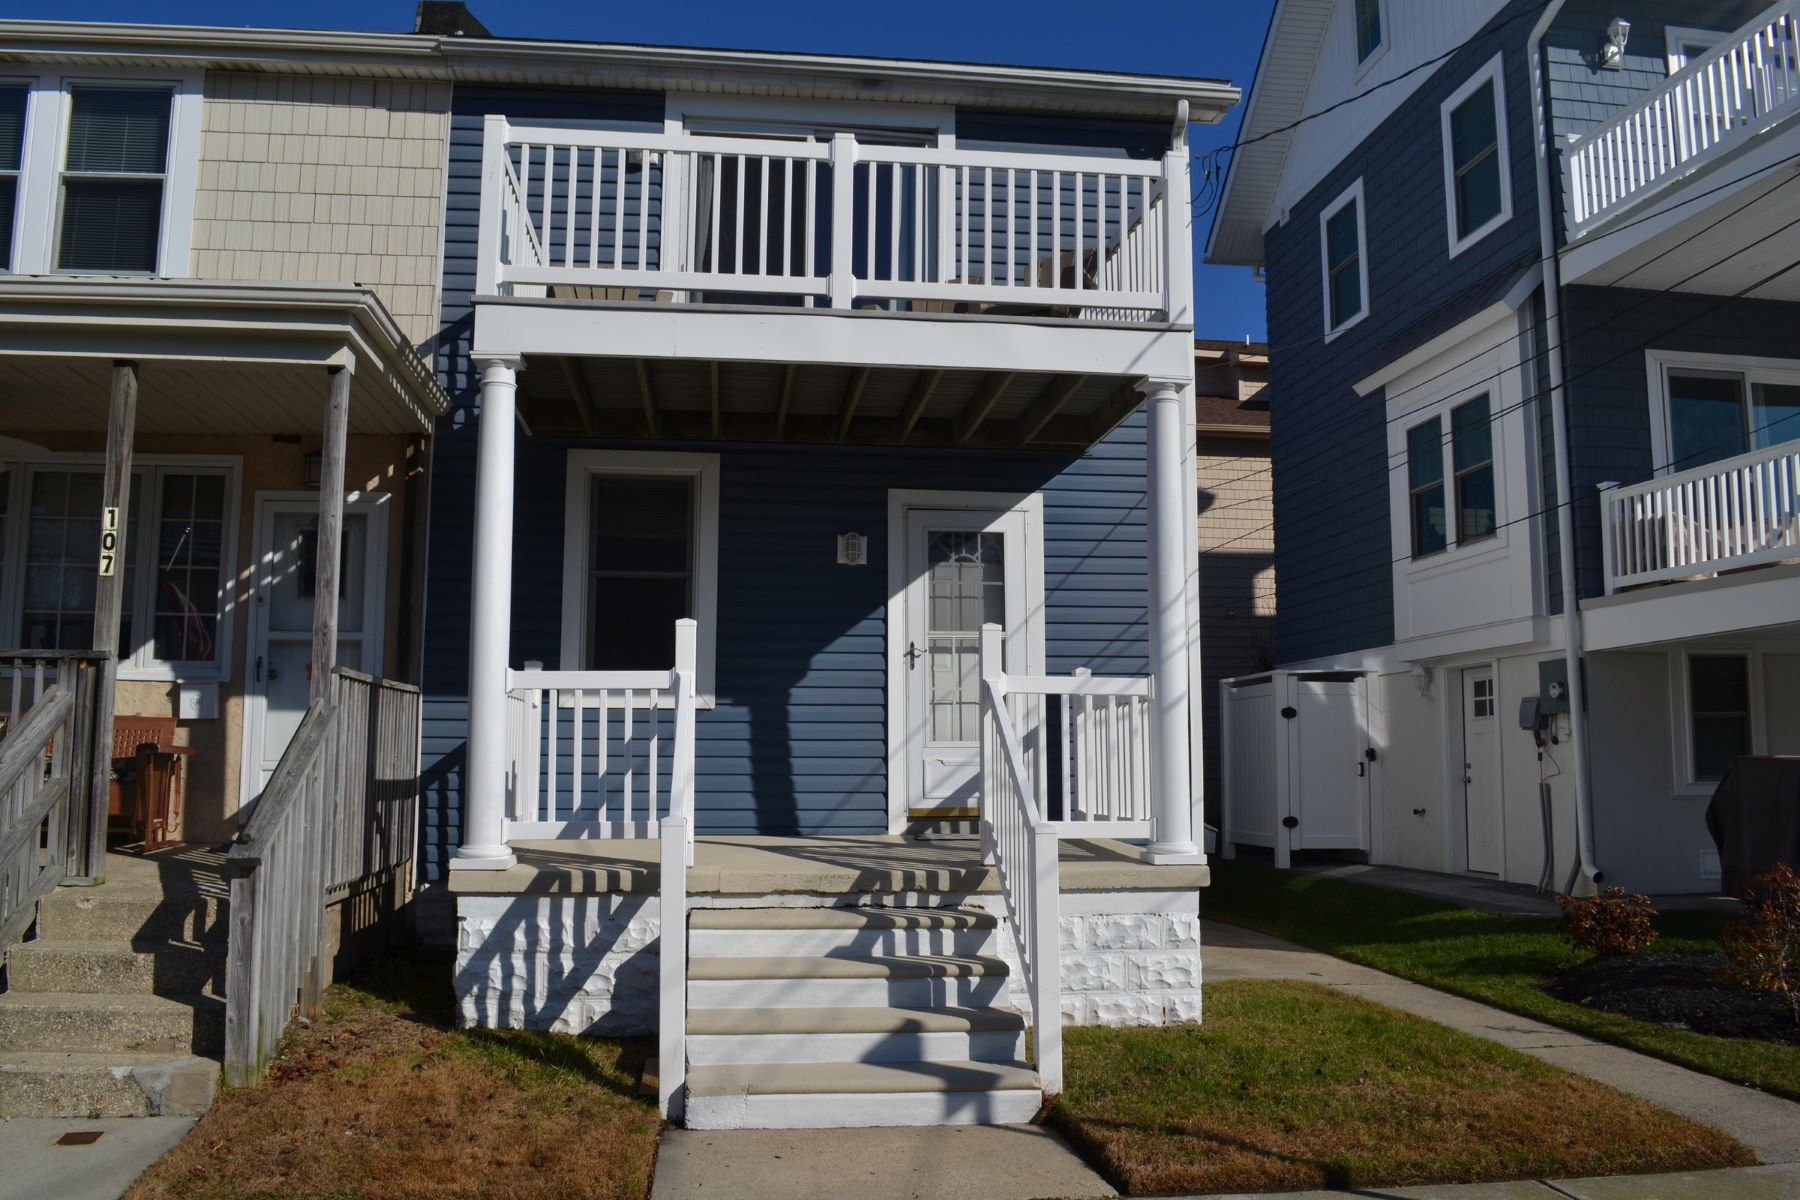 Duplex for Sale at 105 N Madison Ave Margate, New Jersey 08402 United States